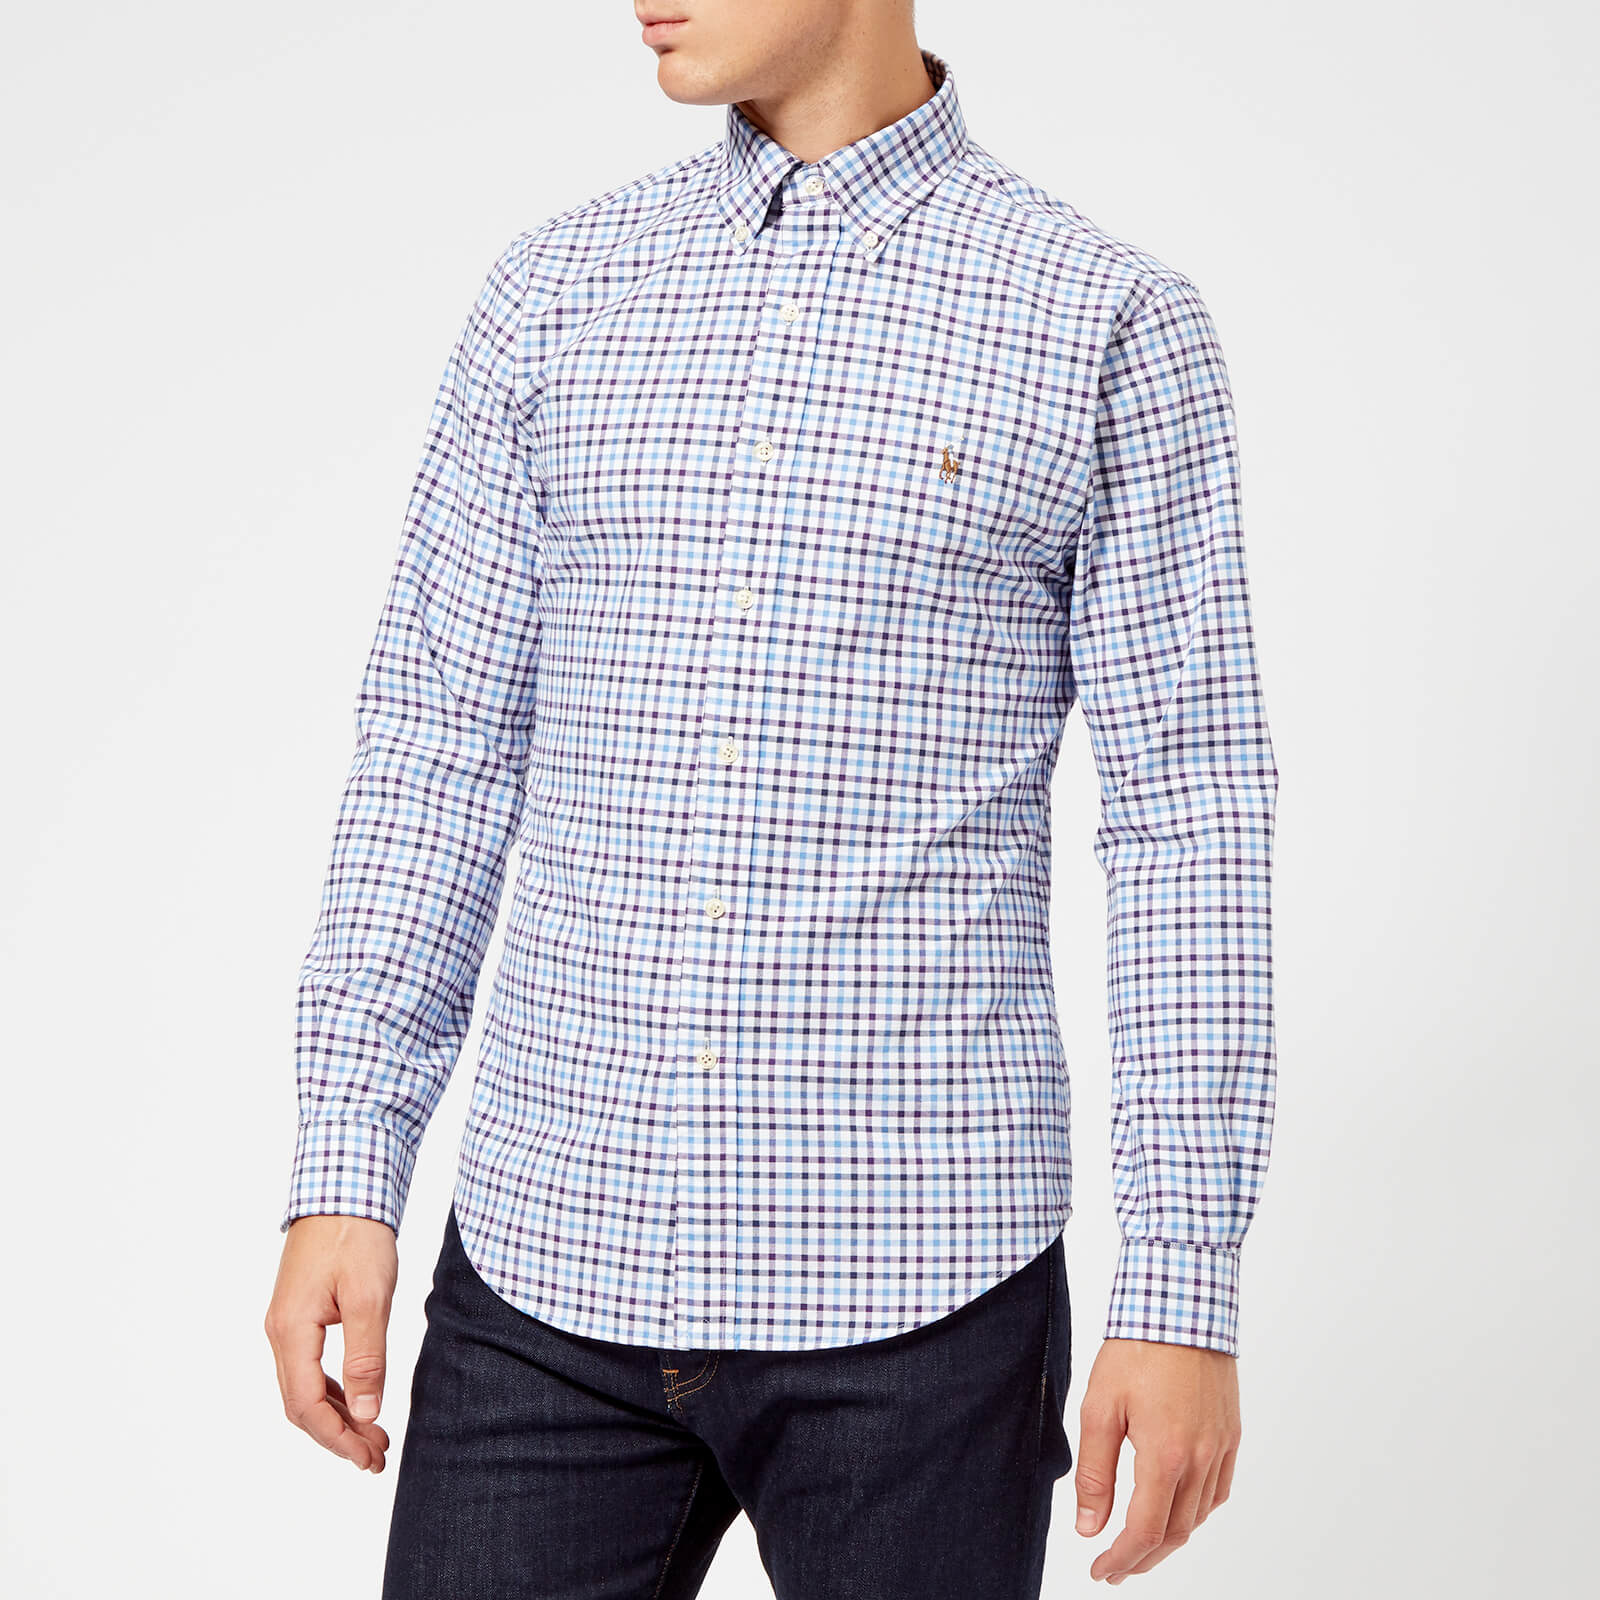 70df165dee7f4 Polo Ralph Lauren Men s Check Shirt - Wine Blue Multi - Free UK Delivery  over £50